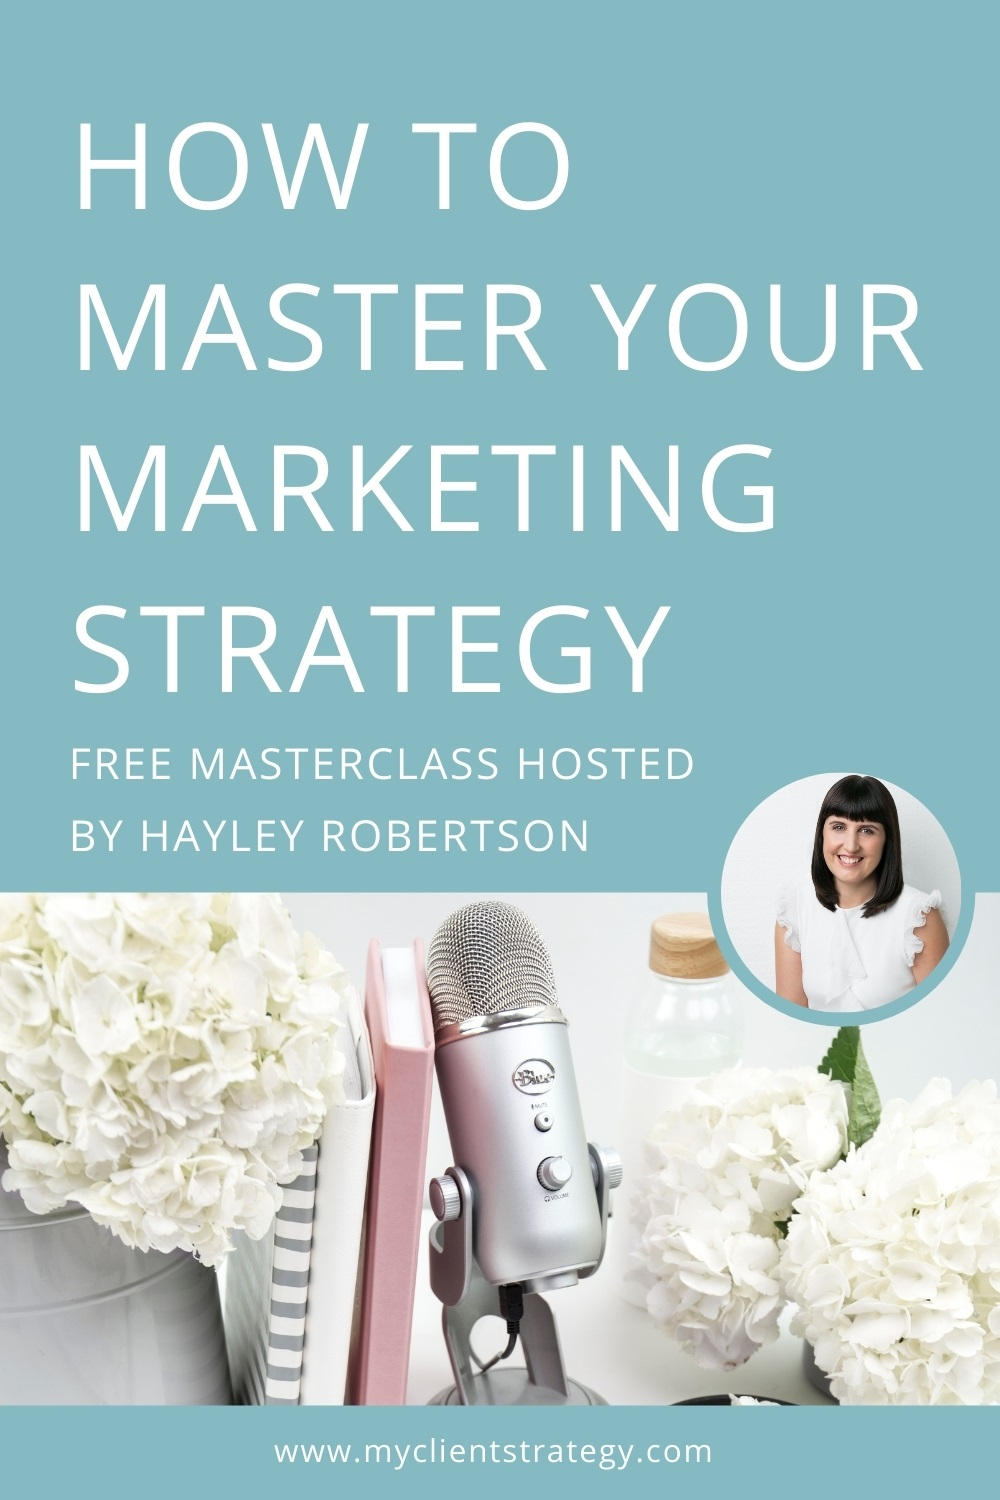 How to Master your Marketing Strategy Masterclass hosted by Hayley Robertson